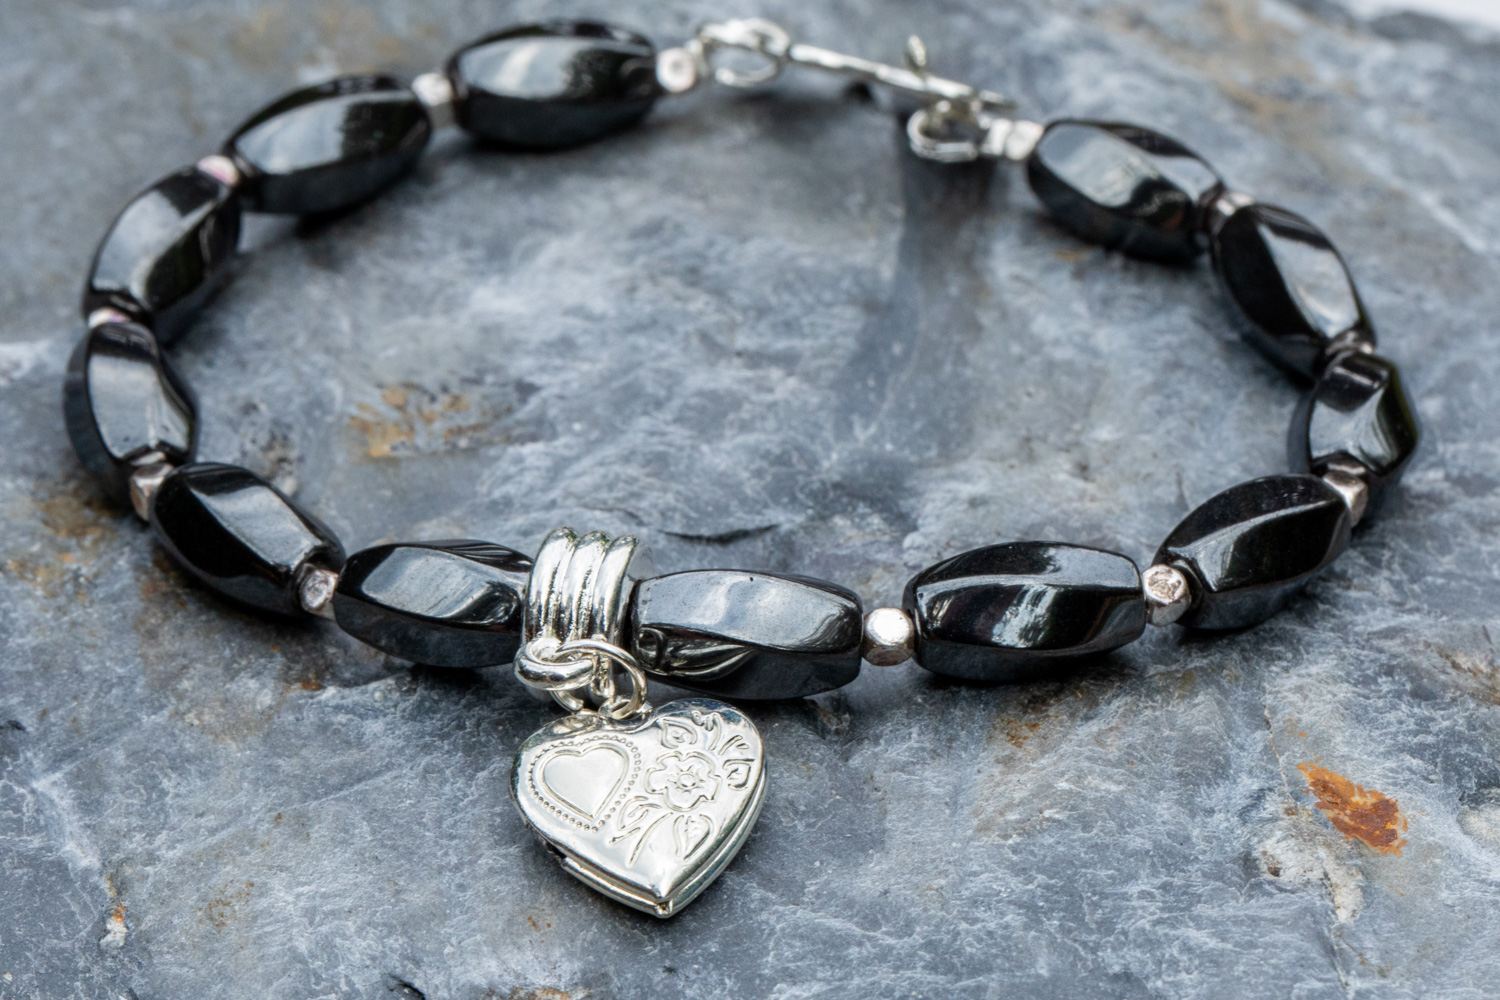 Twisted hematine bracelet with silver plated heart locket - £28